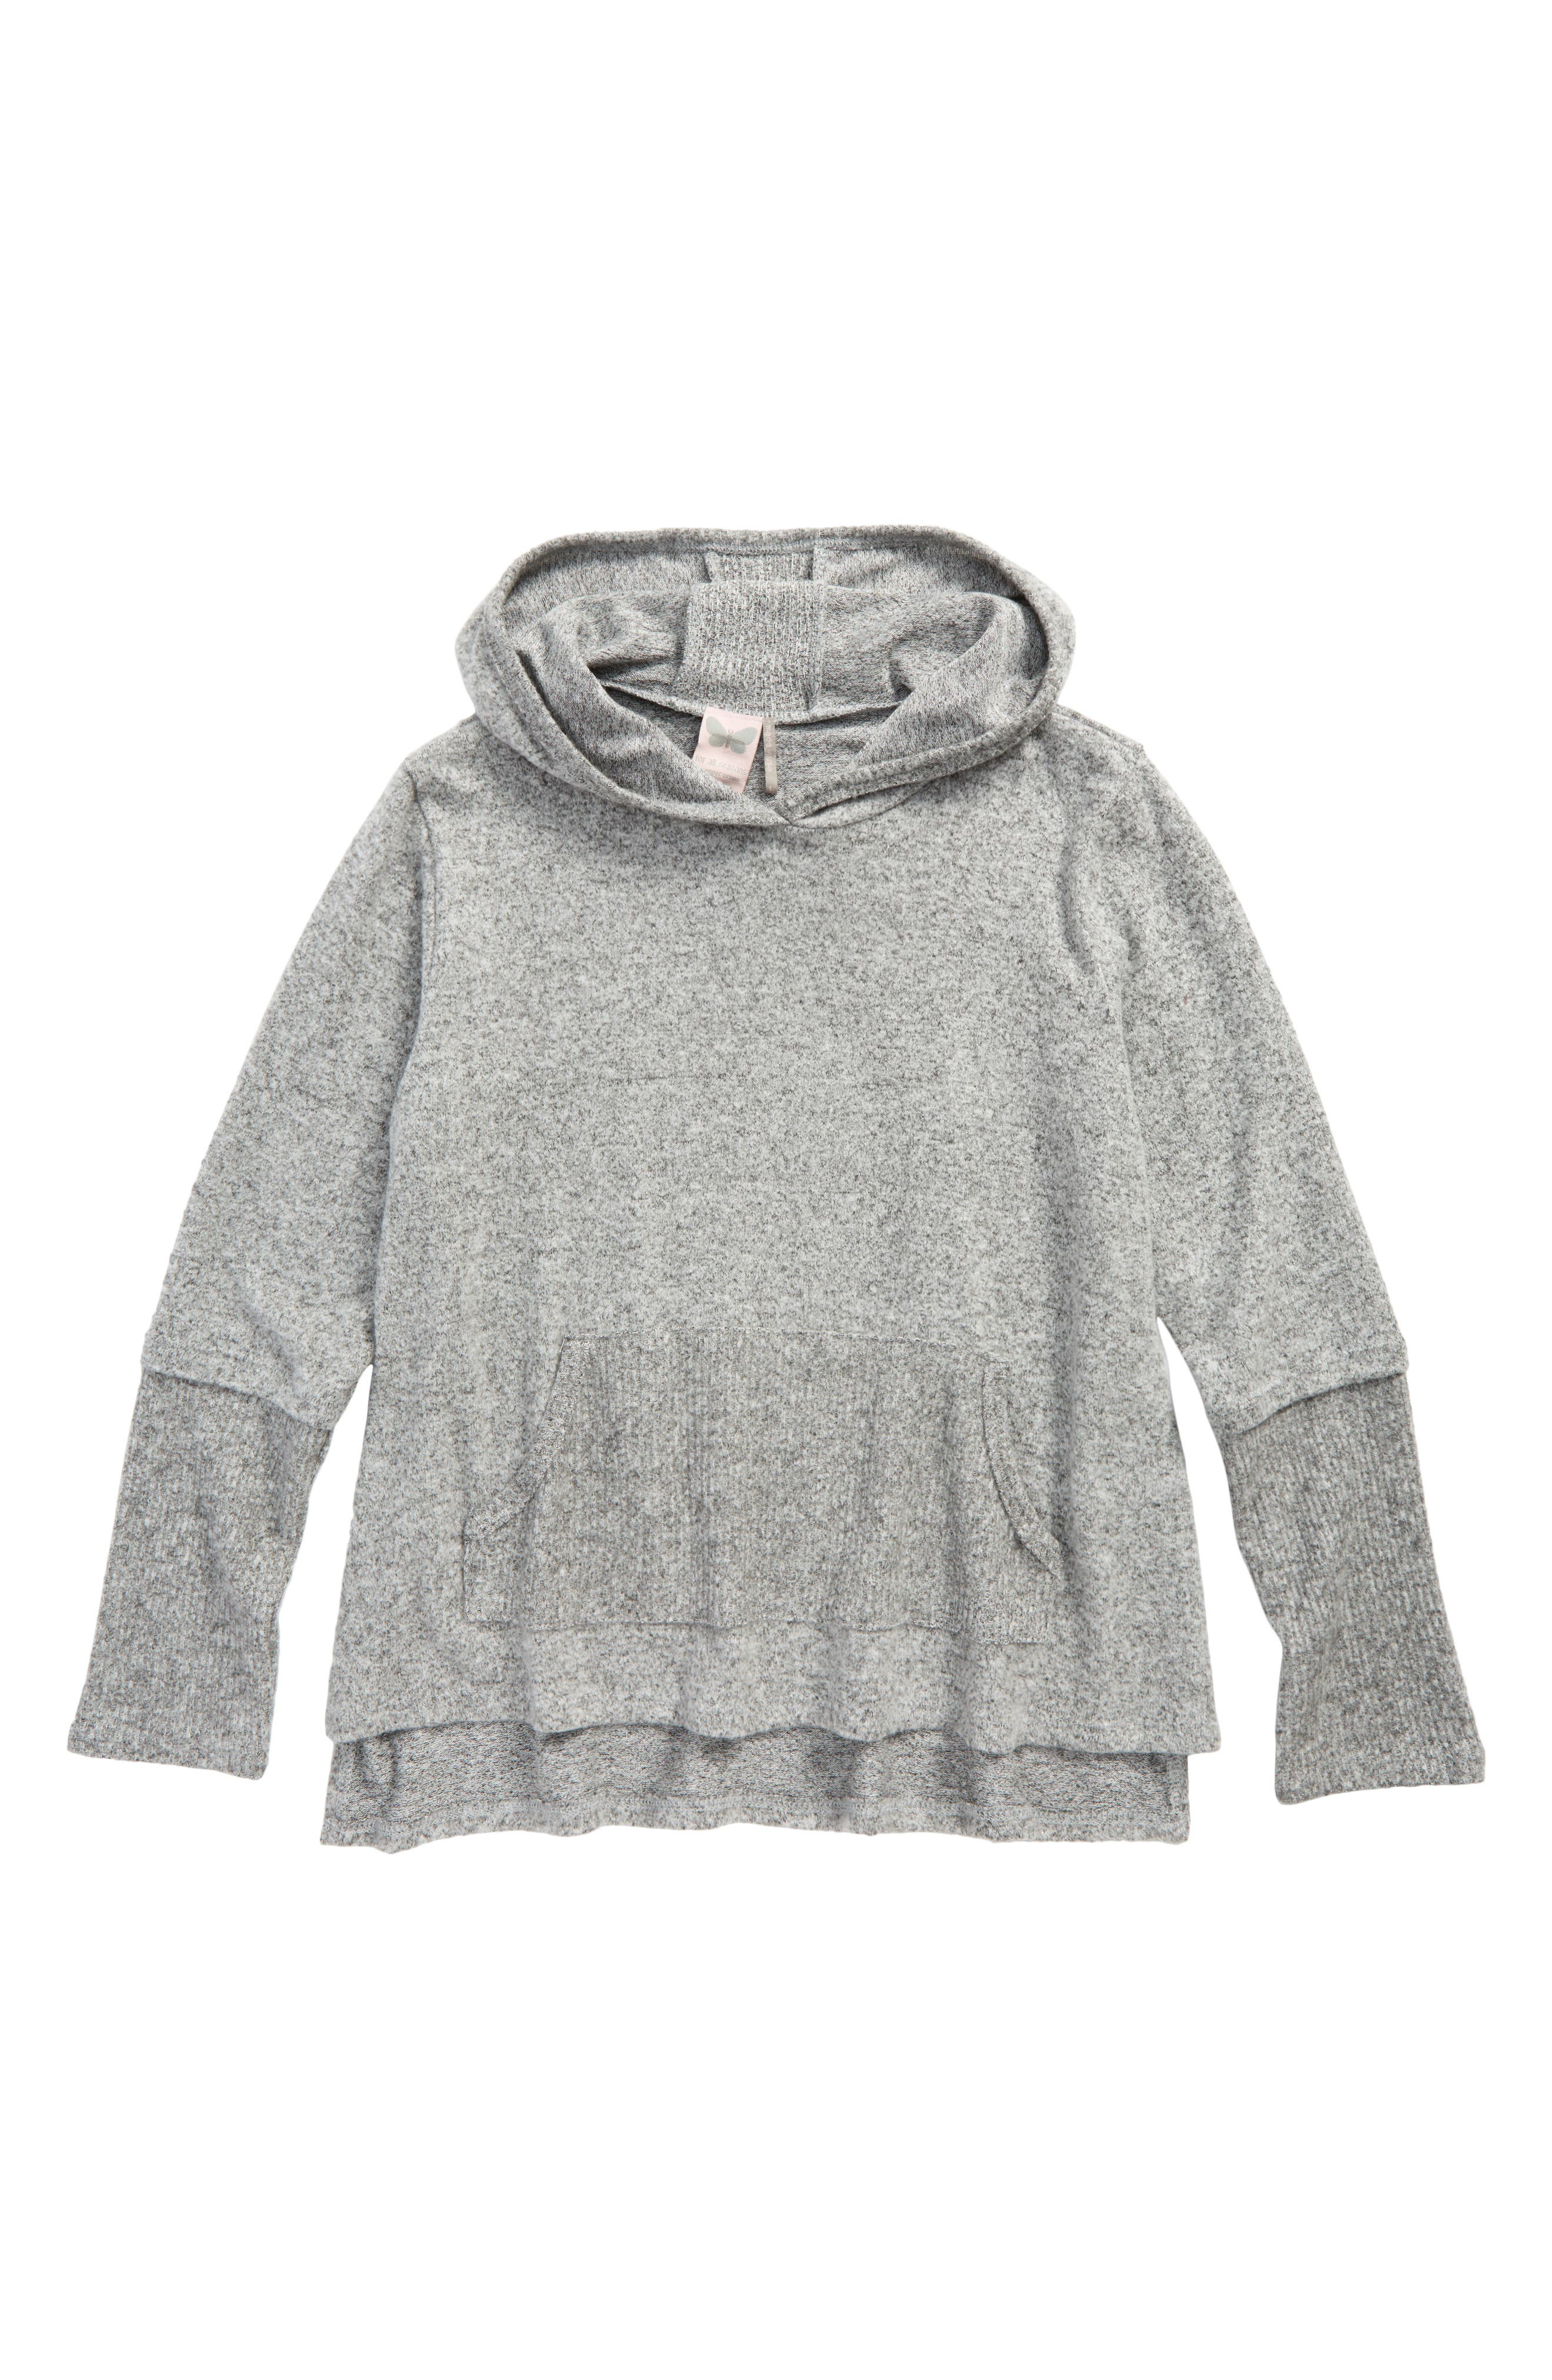 Alternate Image 1 Selected - For All Seasons Knit Hoodie (Big Girls)